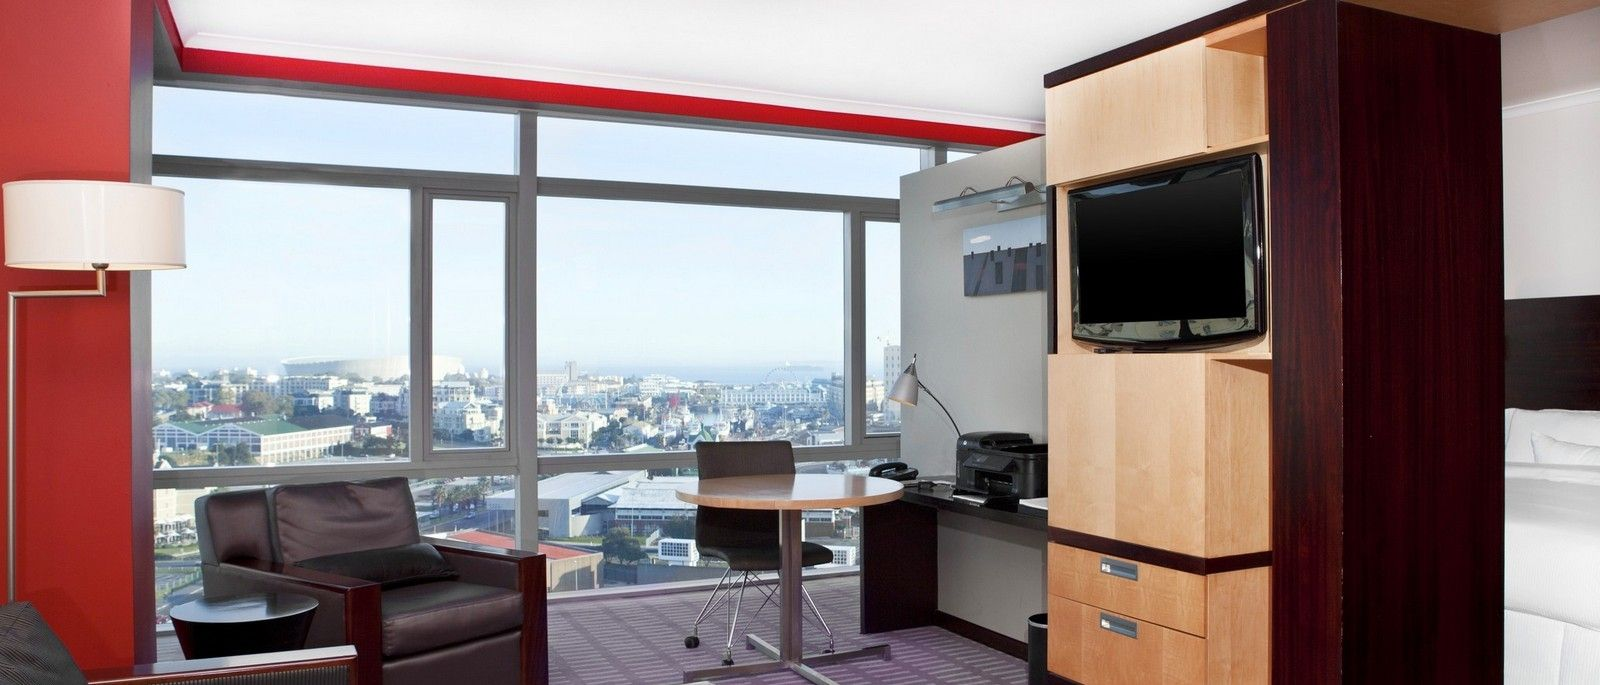 Sample Westin Cape Town Room image with City and Ocean View